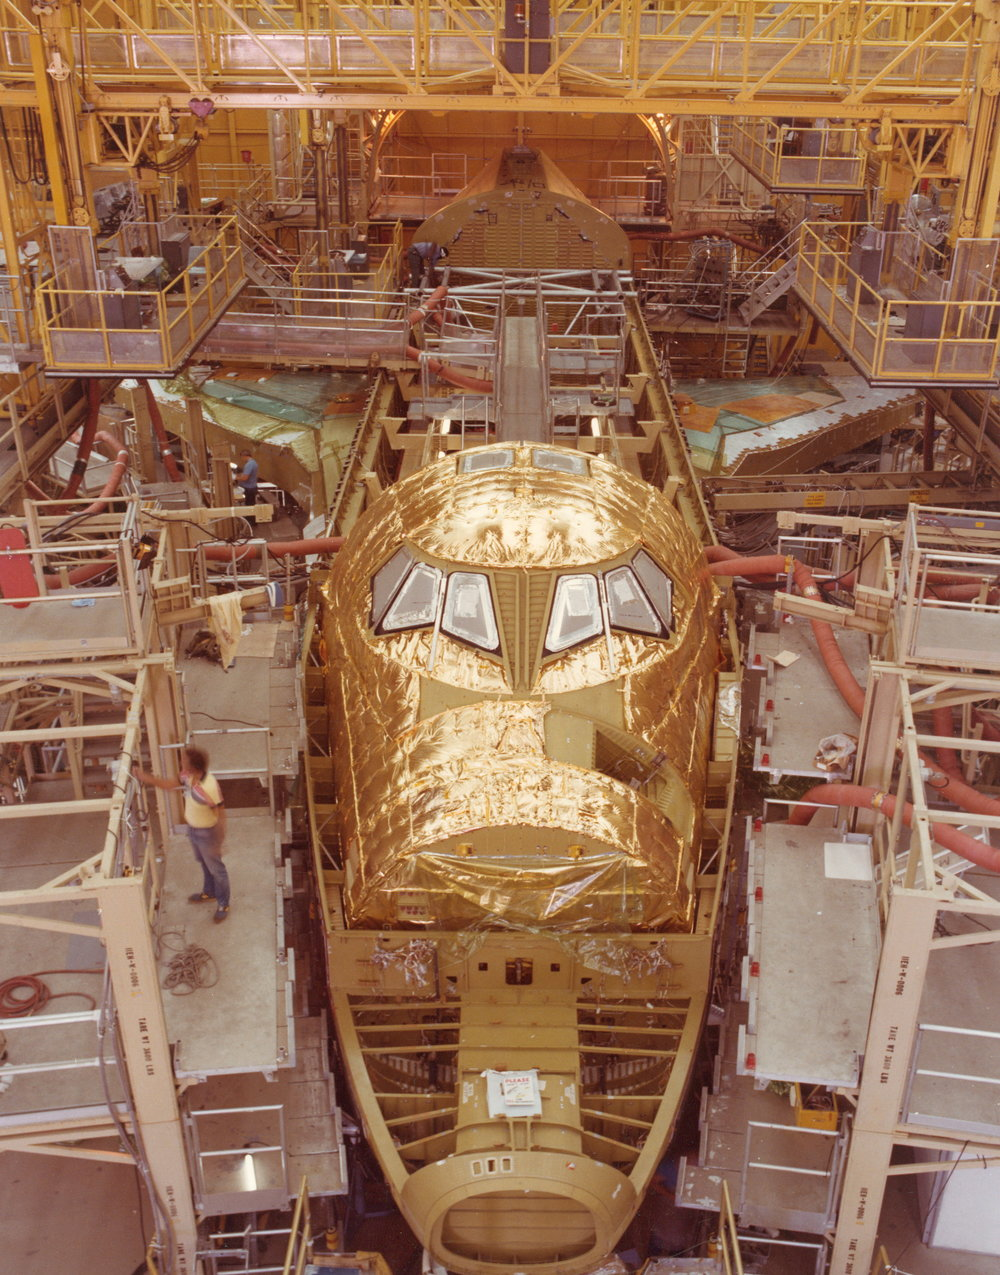 orbiter assembly work at rockwell.jpg